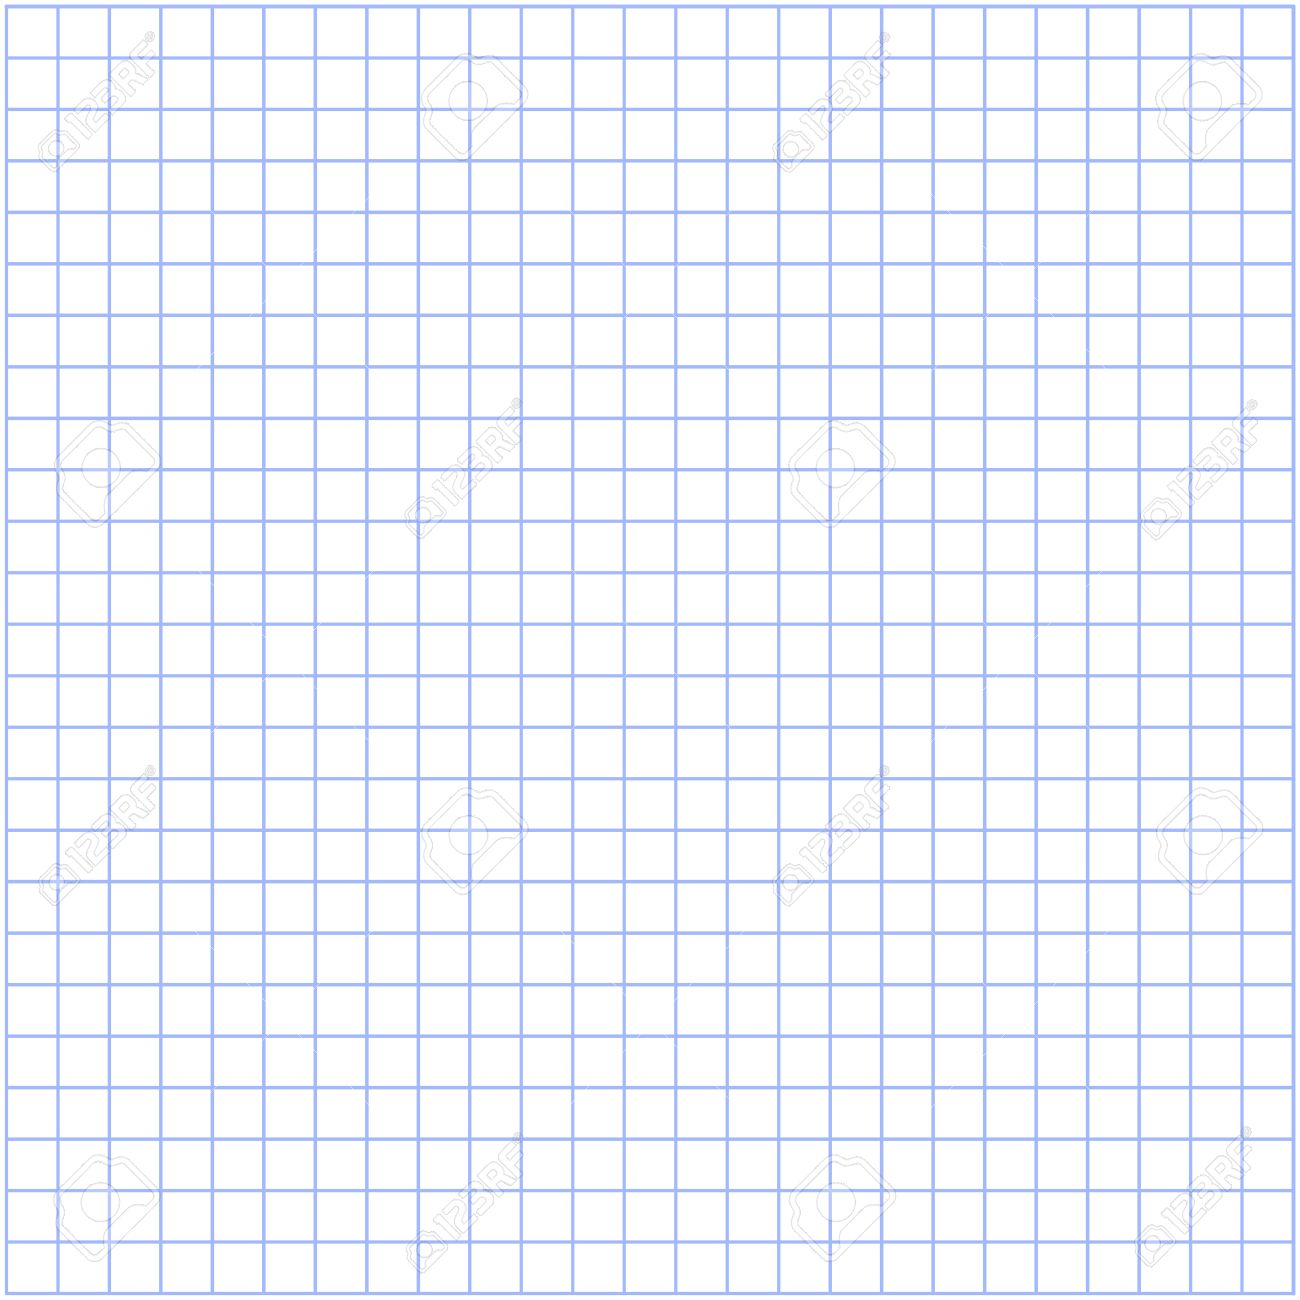 graph paper illustrator background eps10 royalty free cliparts rh 123rf com graph paper vector file grid paper vector free